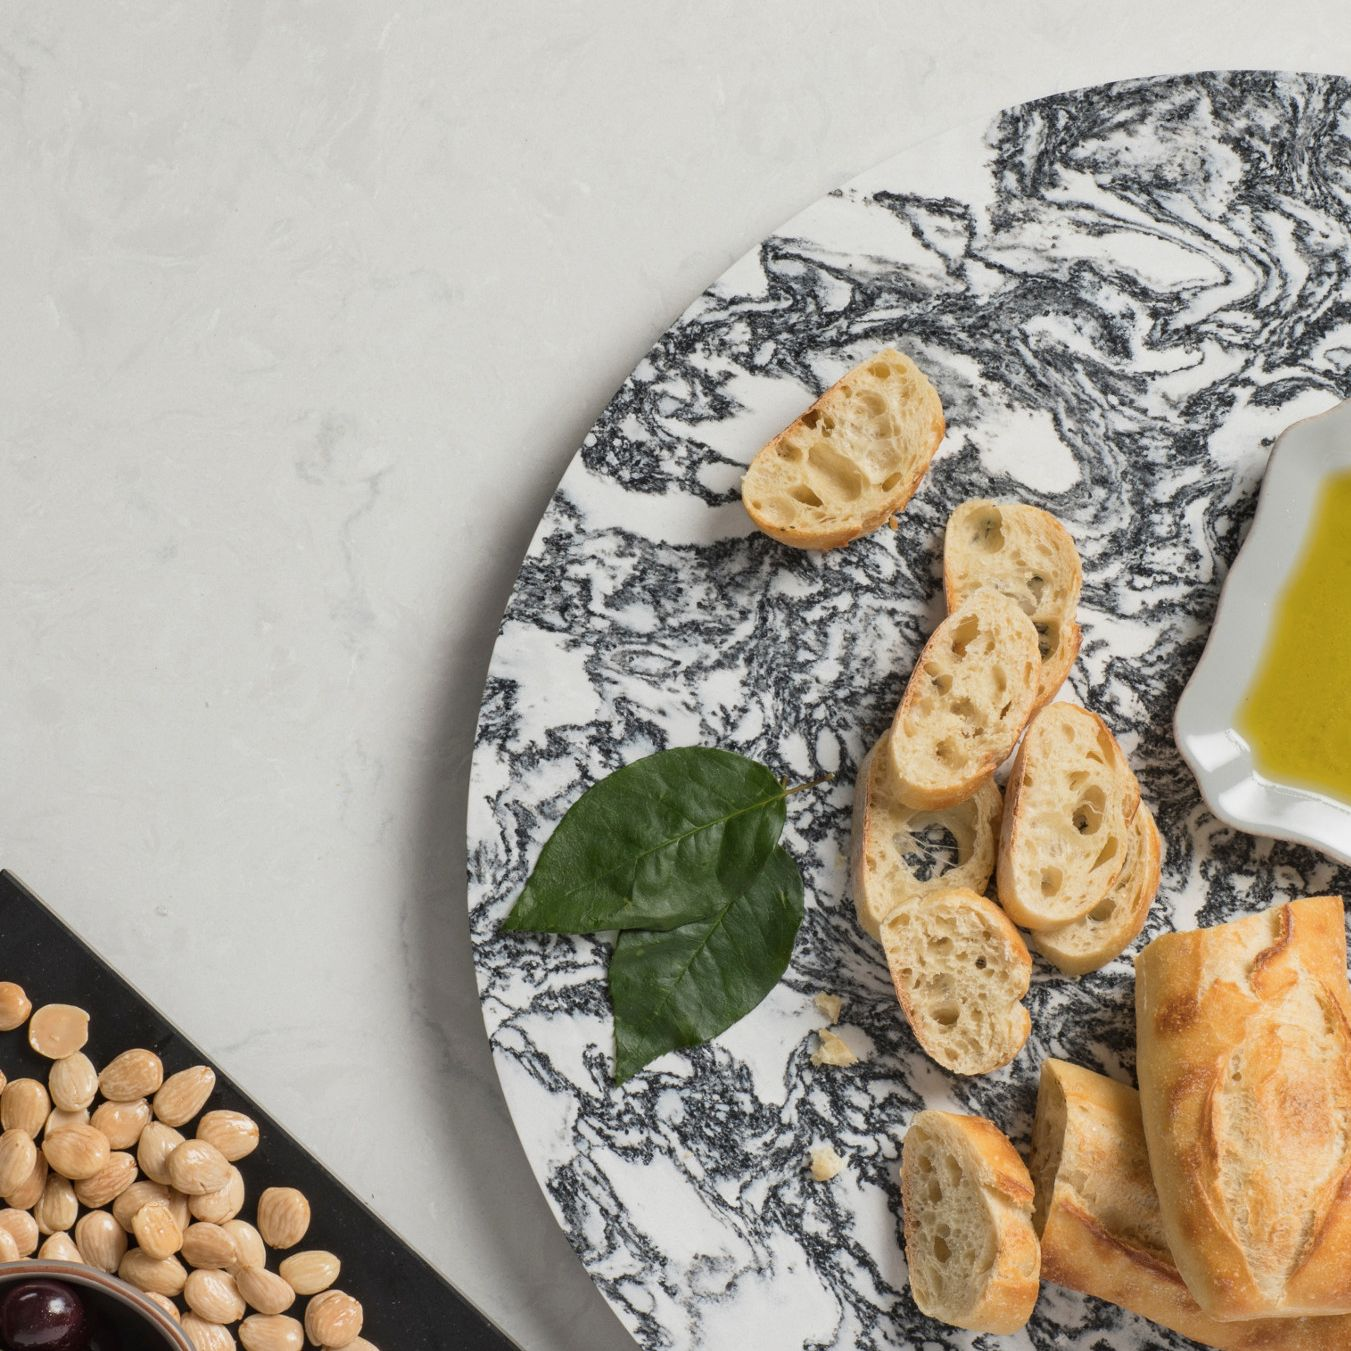 Cambria lazy Susan being used to serve bread.